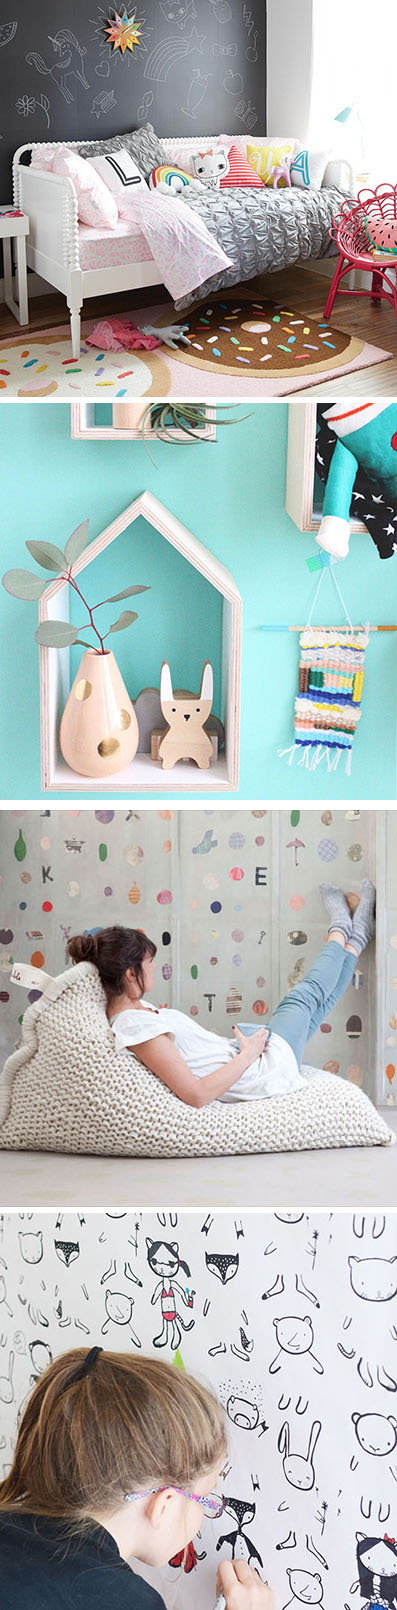 Here's a collection of cute bedroom decorating ideas perfect for a little girl or tween, that include chalkboard walls, wall art and comfortable furniture.